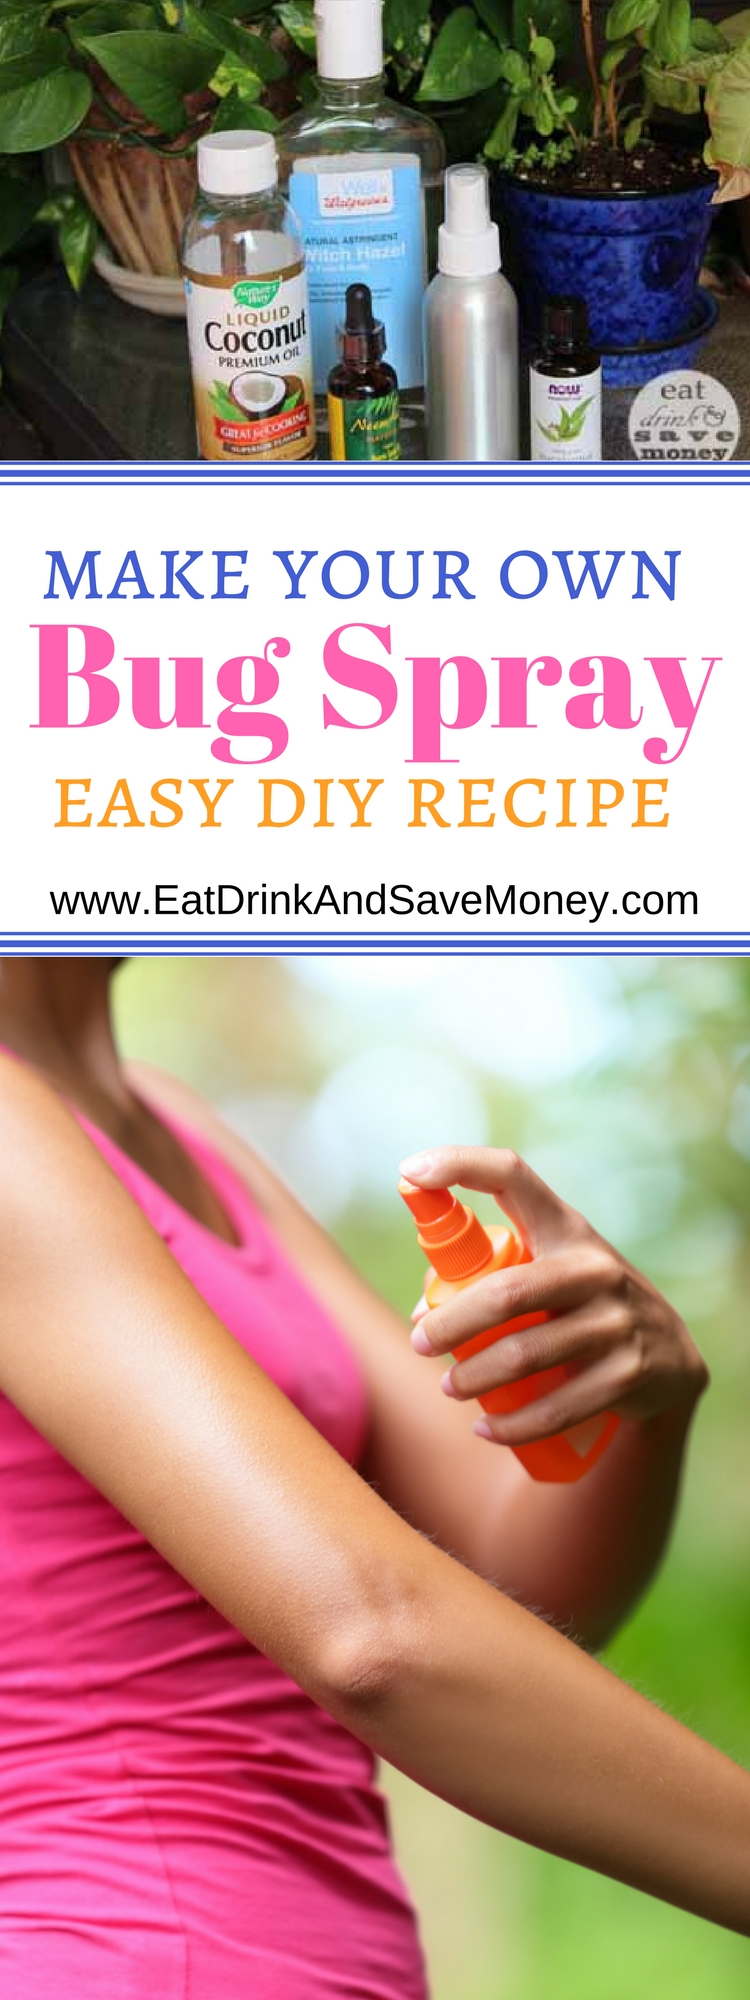 How to make your own bug spray. DIY bug spray recipe. Non-toxic bug spray recipe. Insect repellent. Things you need for the summer.